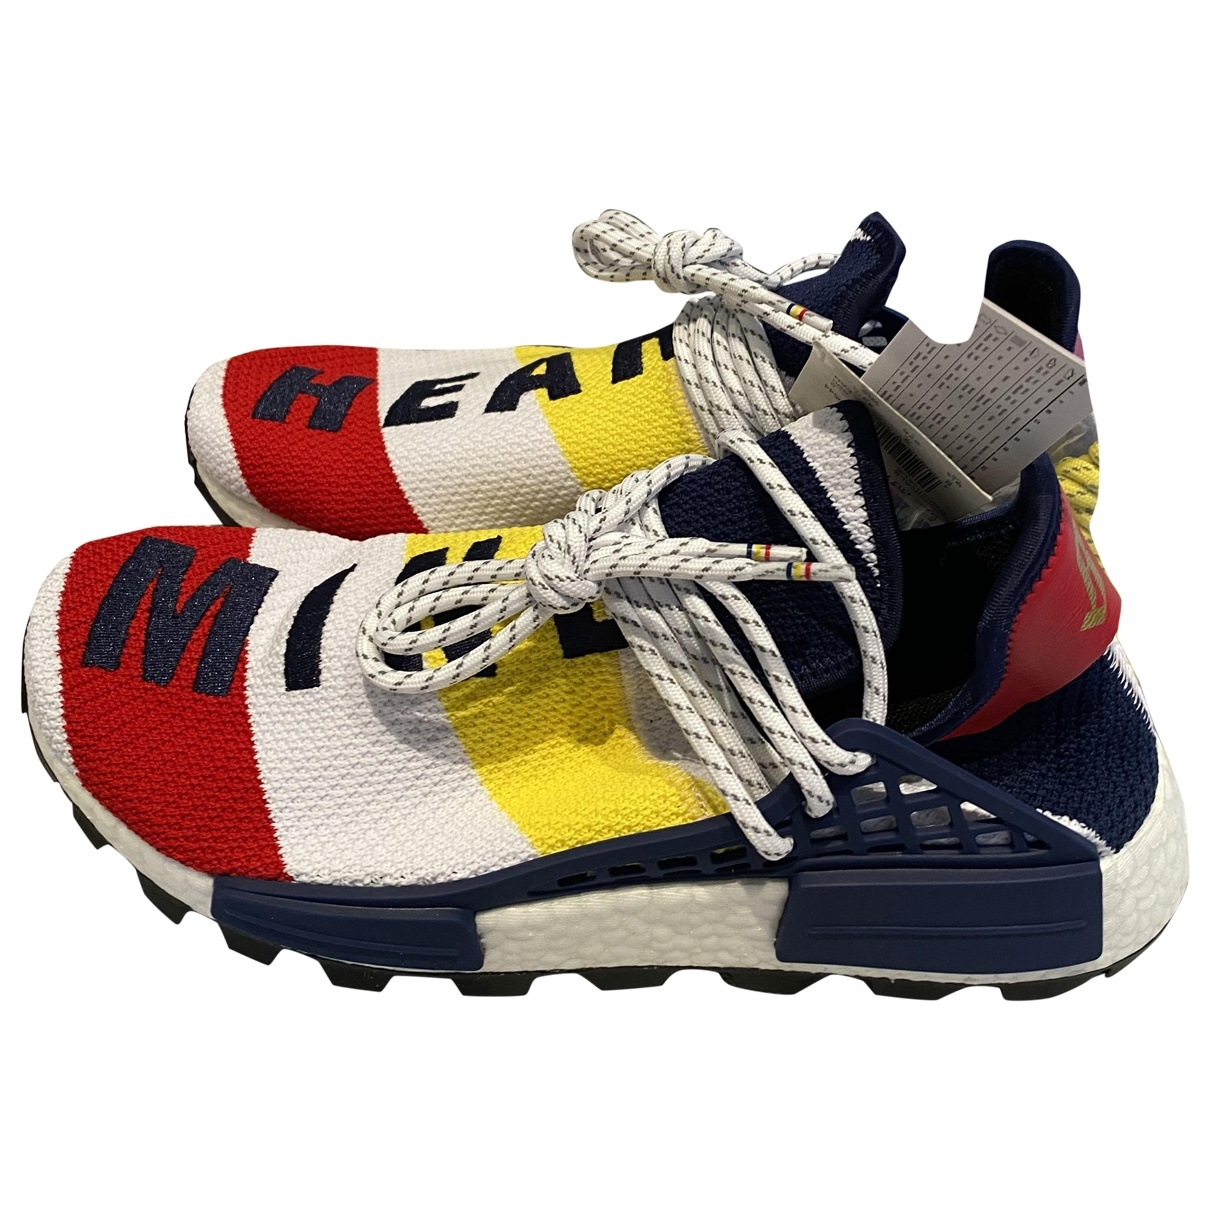 Adidas X Pharrell Williams - Baskets NMD Hu pour homme en toile - multicolore